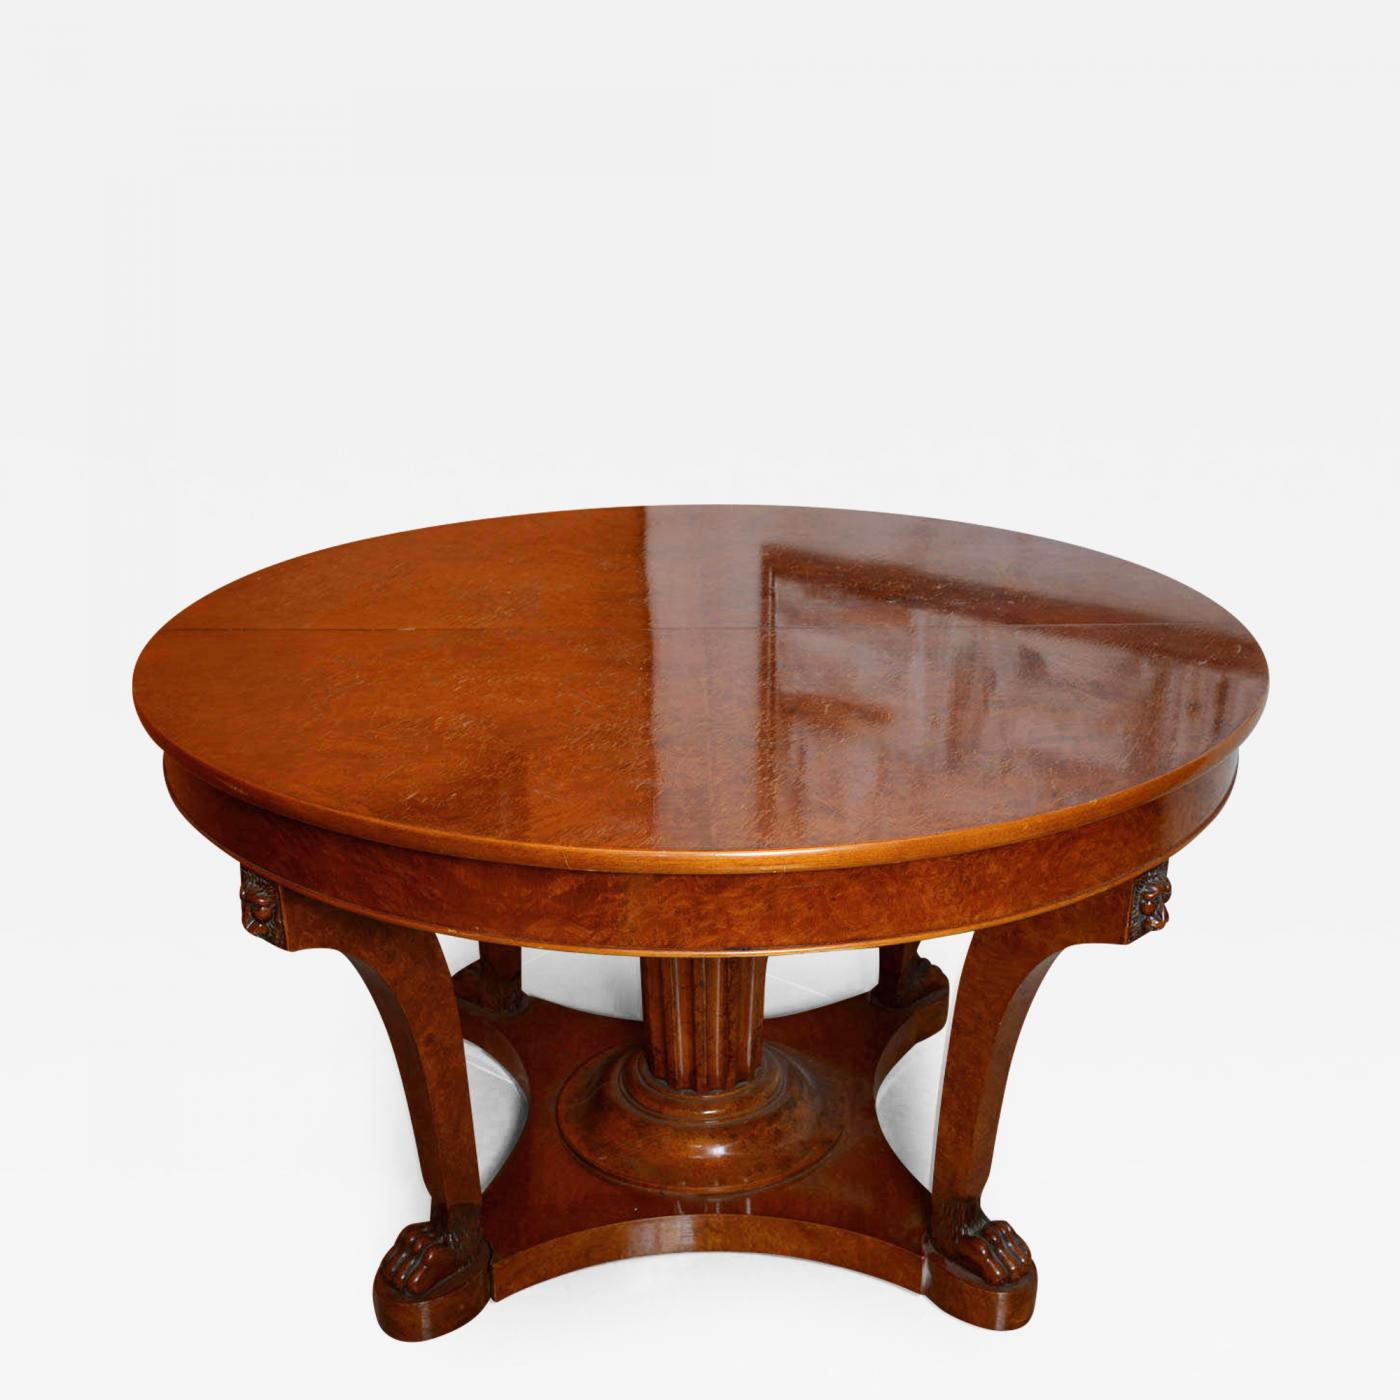 French Empire Revival Burled Walnut And Walnut Extension Dining Table - Burled walnut dining table